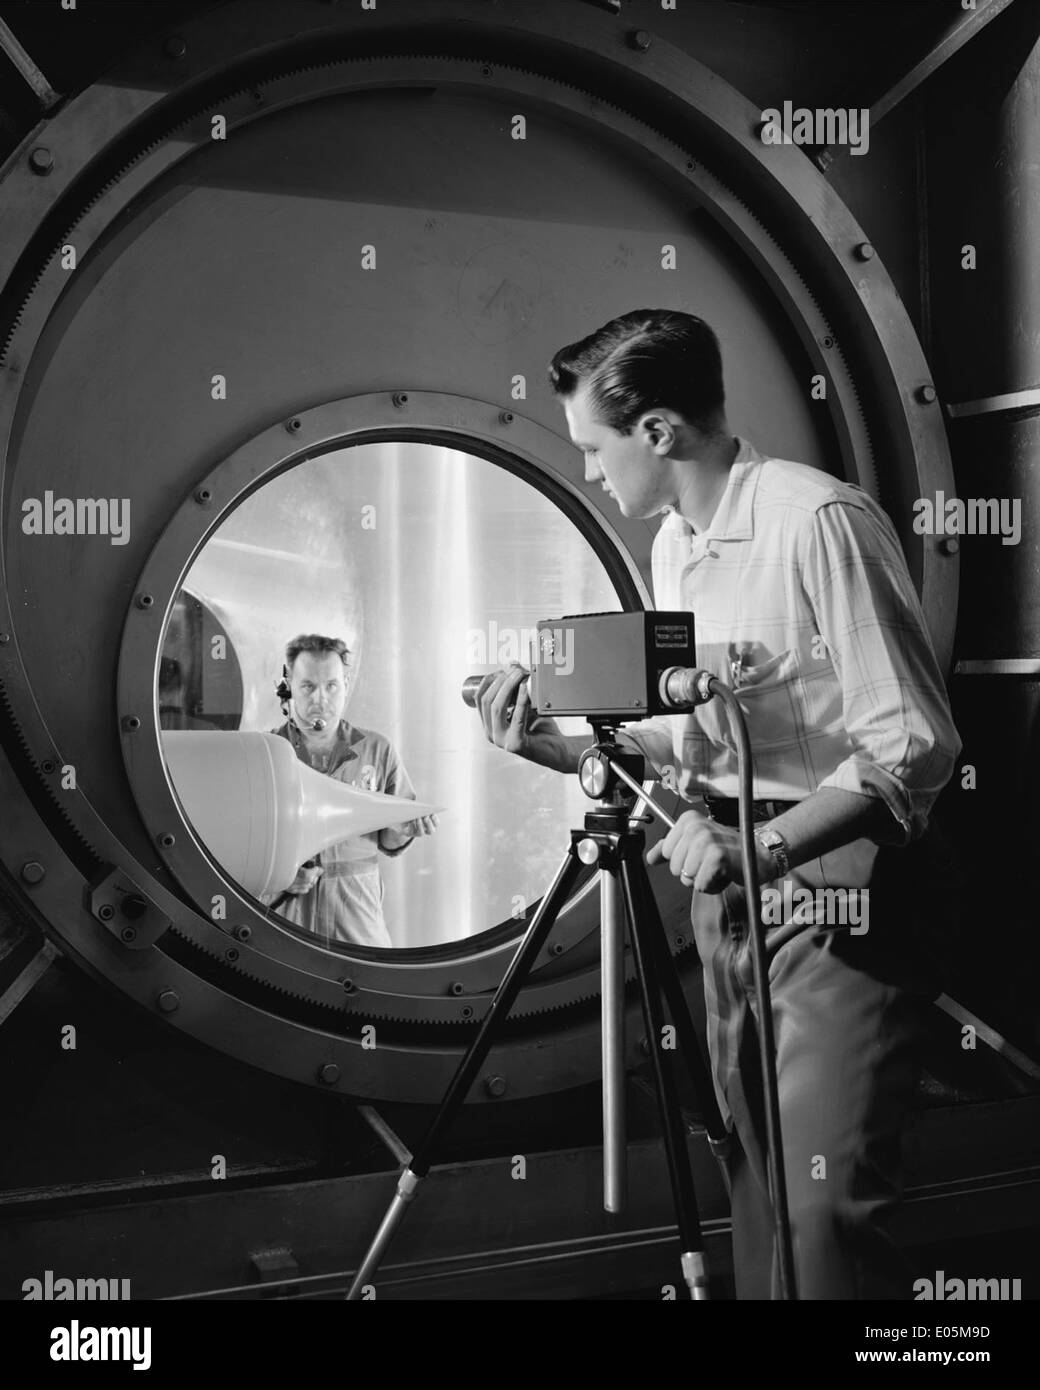 Technician setting up RCA Television Camera - Stock Image